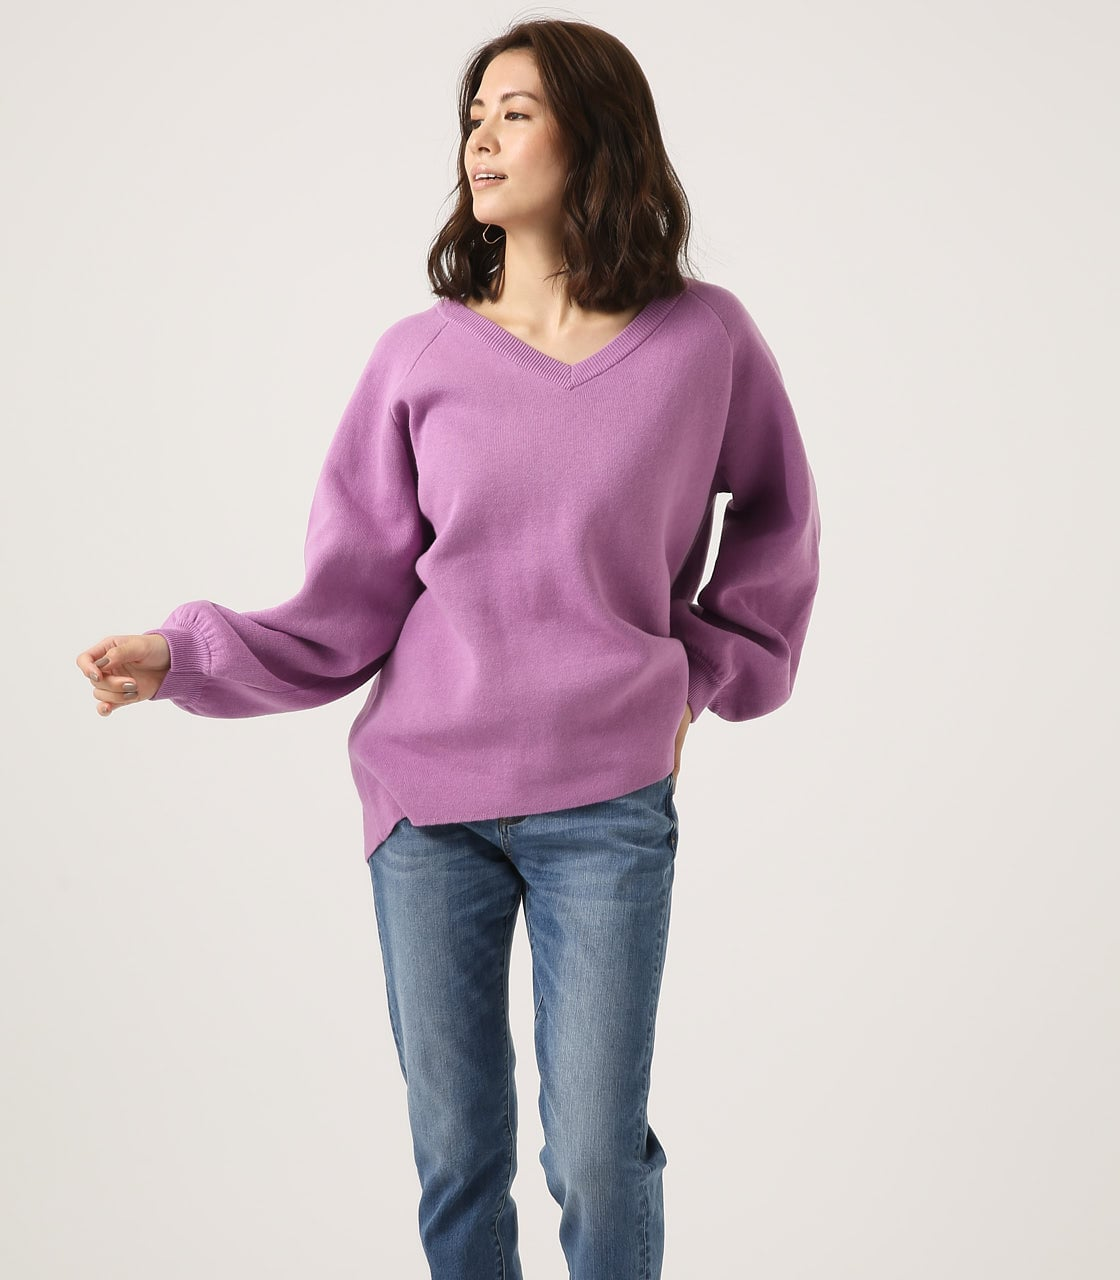 【AZUL BY MOUSSY】SWEATTER Vネック LOOSE TOPS 詳細画像 L/PUR 3